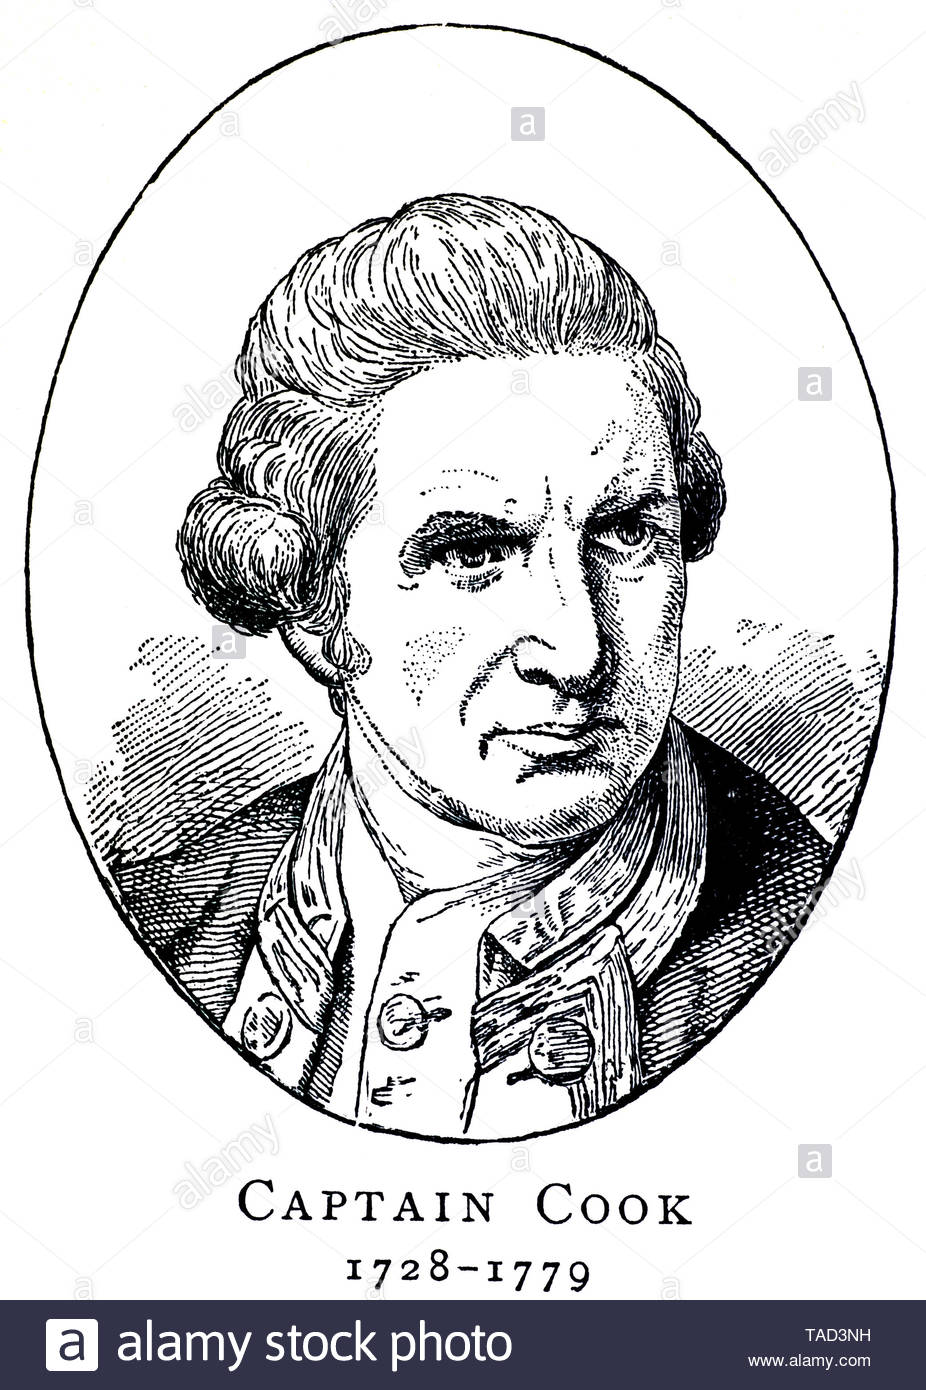 Captain James Cook 1728 - 1779 was a British explorer and captain in the Royal Navy, known for discovering Australia and New Zealand - Stock Image